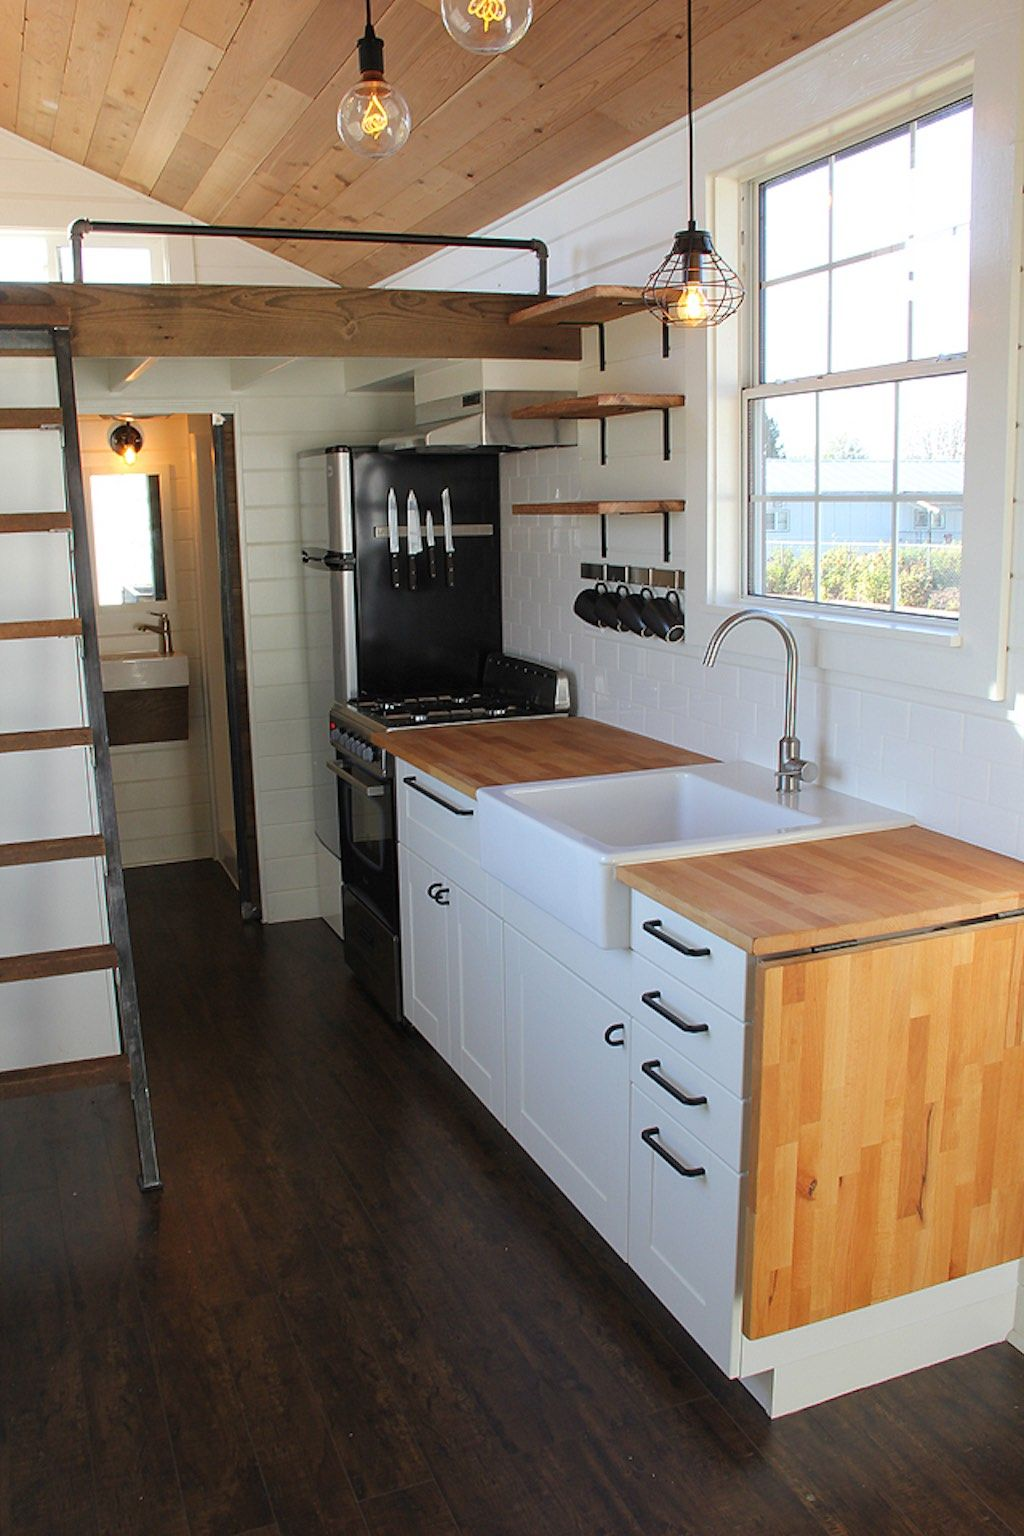 Rustic Industrial   Tiny House Living   Home kitchens ...